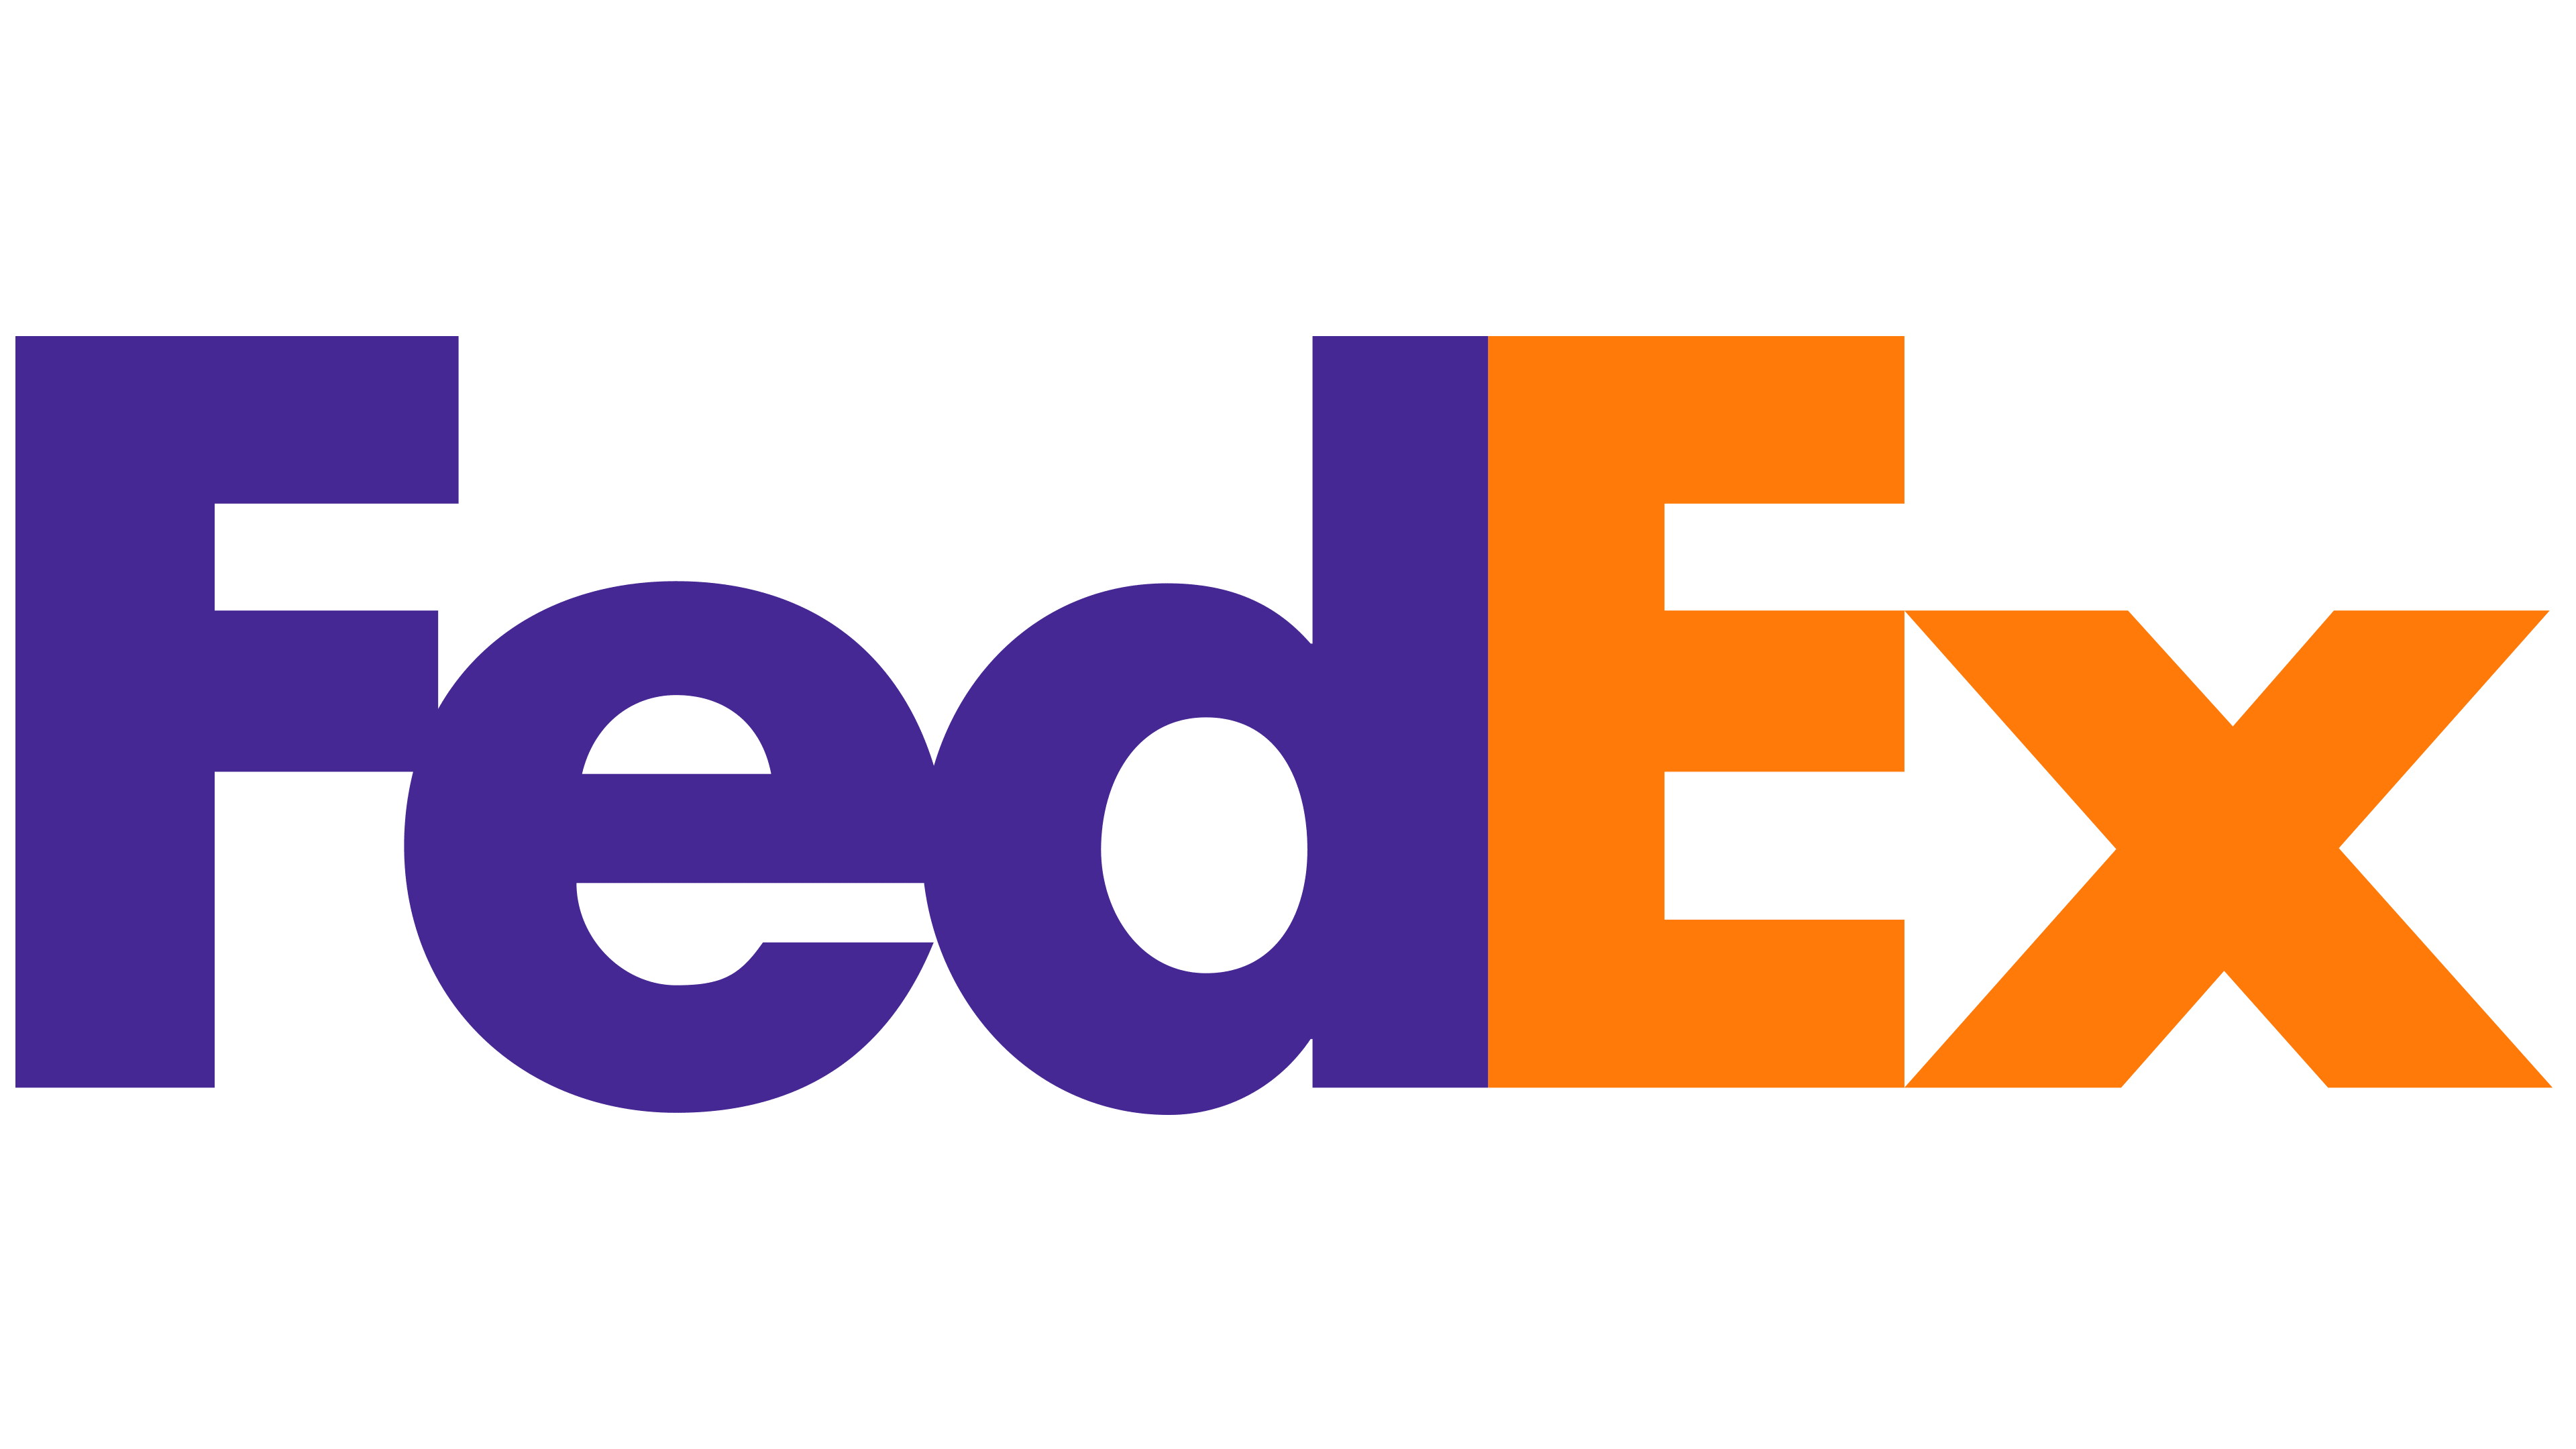 Tips For Designing Your Business Logo - Fedex Logo Design